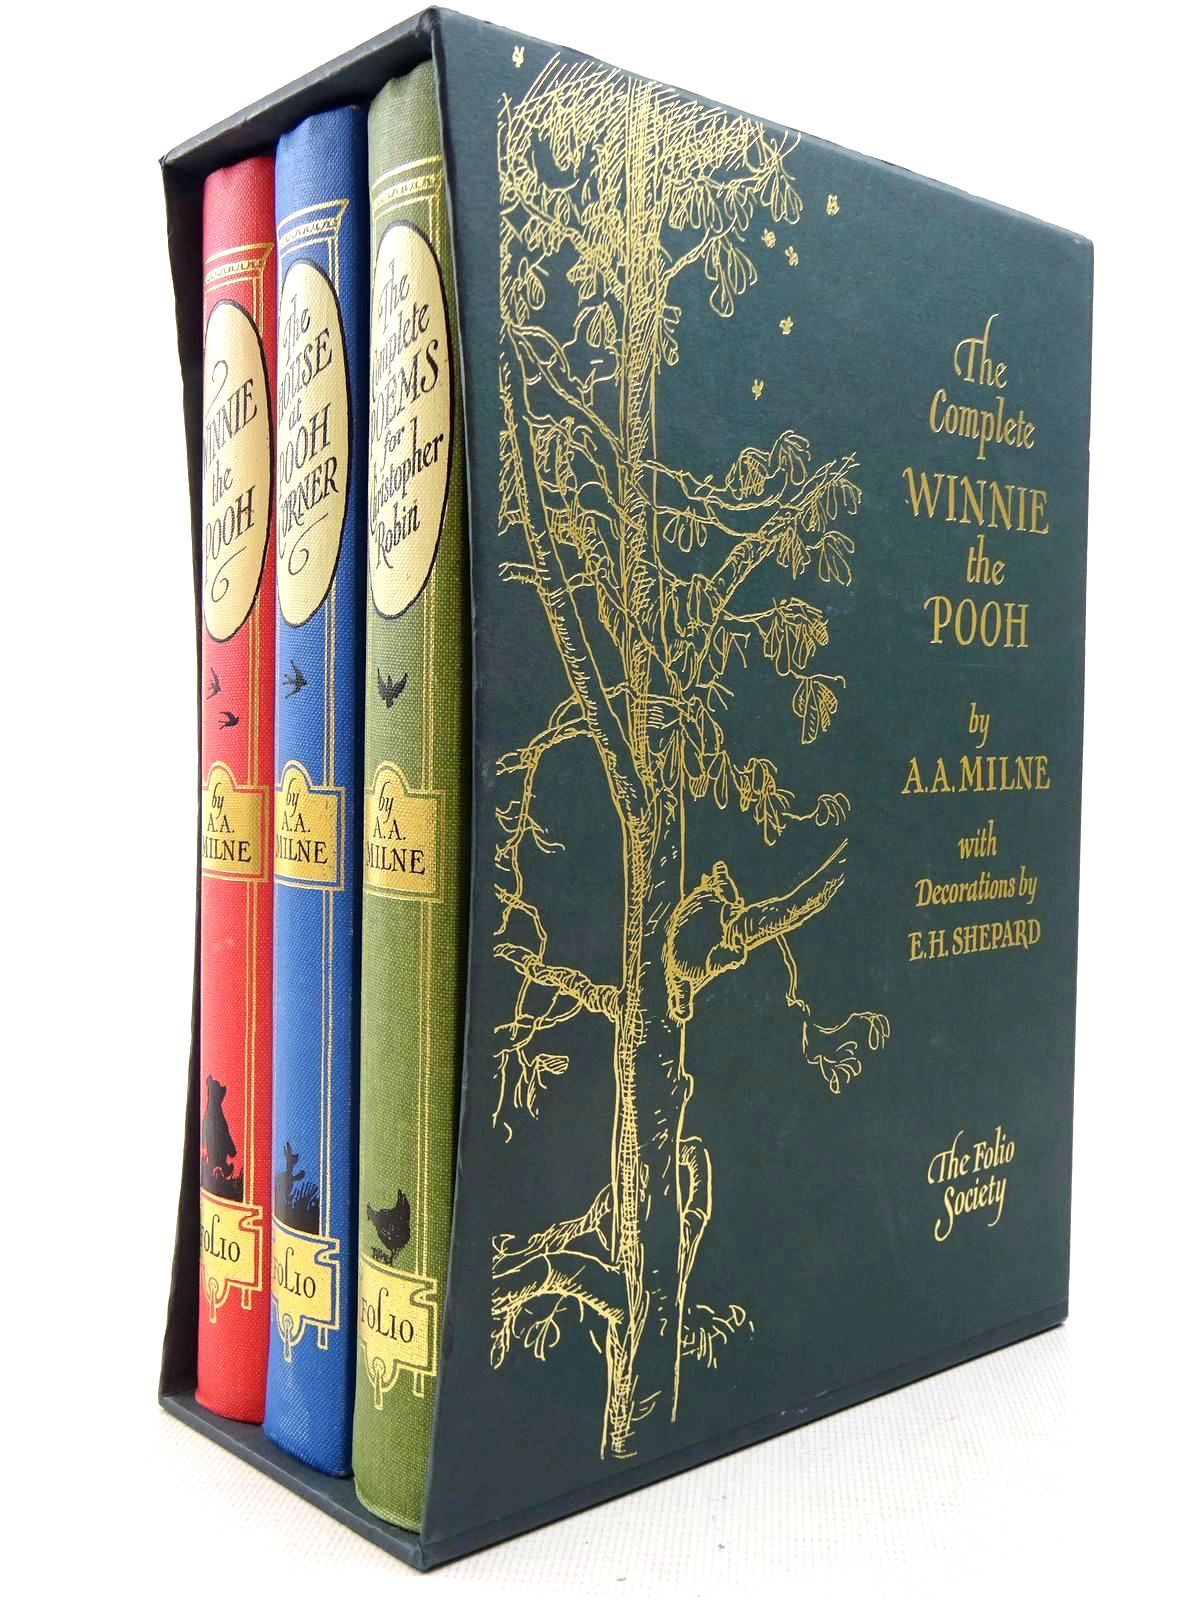 Photo of THE COMPLETE WINNIE THE POOH written by Milne, A.A. illustrated by Shepard, E.H. published by Folio Society (STOCK CODE: 2129187)  for sale by Stella & Rose's Books